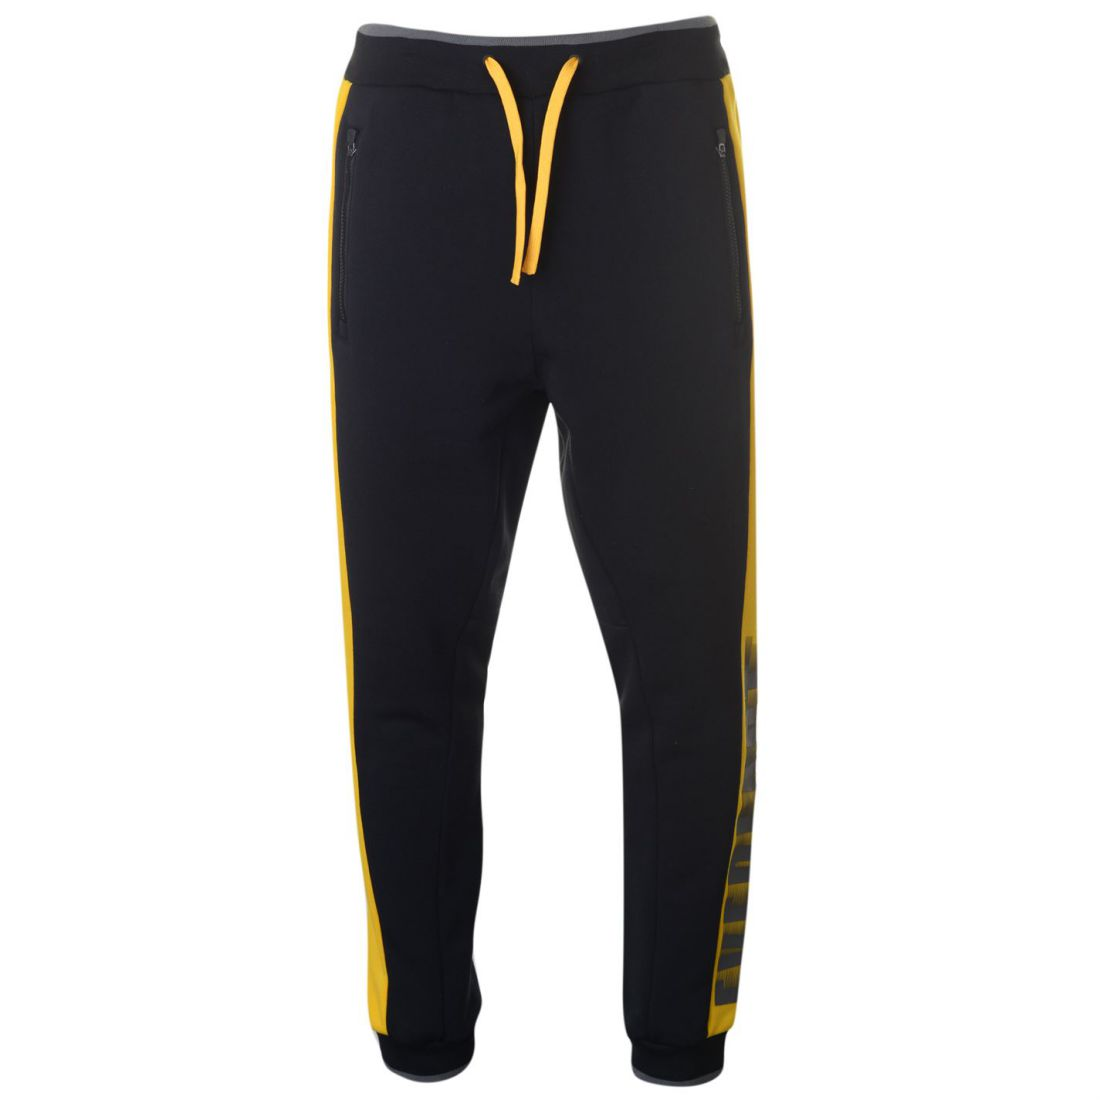 c65863187c9732 Image is loading Everlast-Mens-LL-CH-Jogging-Bottoms-Fleece-Trousers-